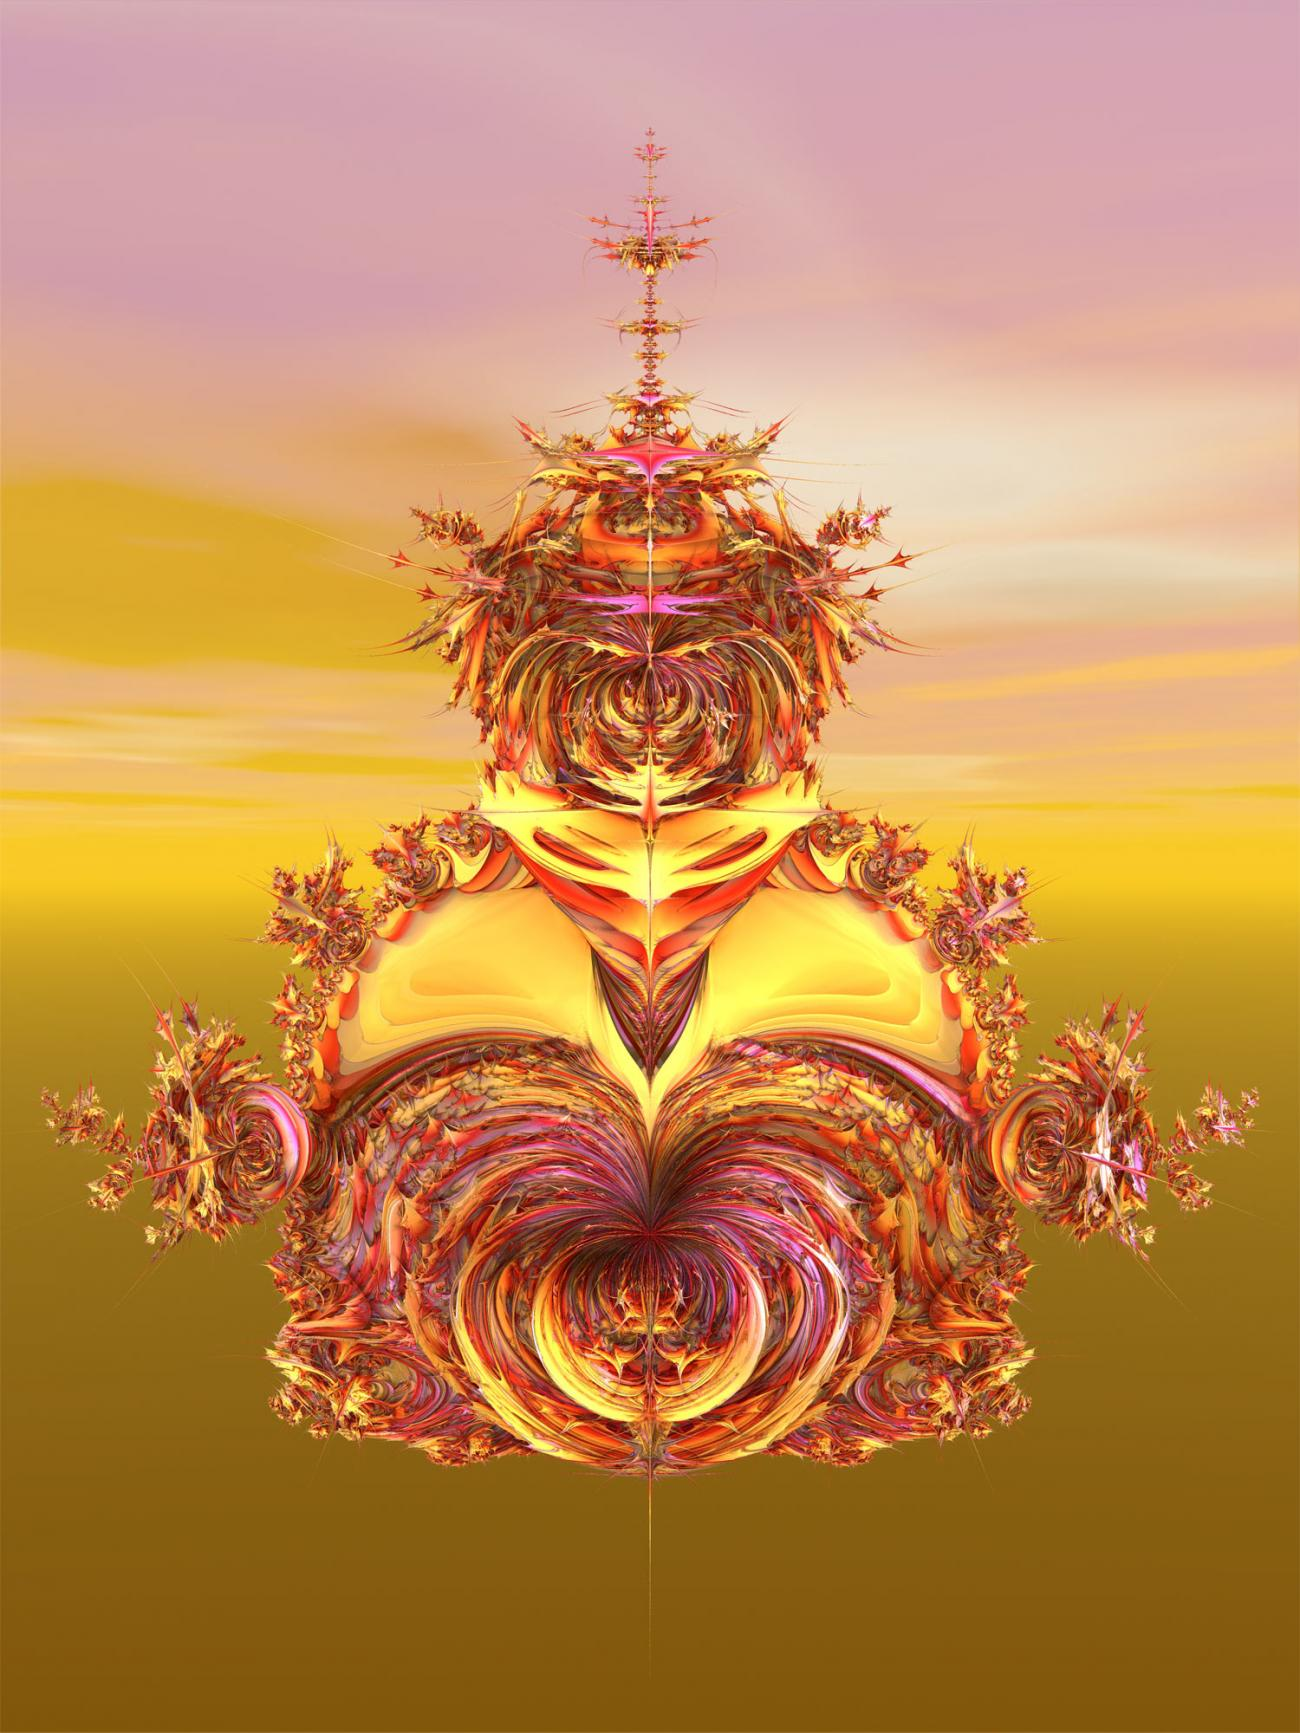 Back to Mandelbrot by Luc2